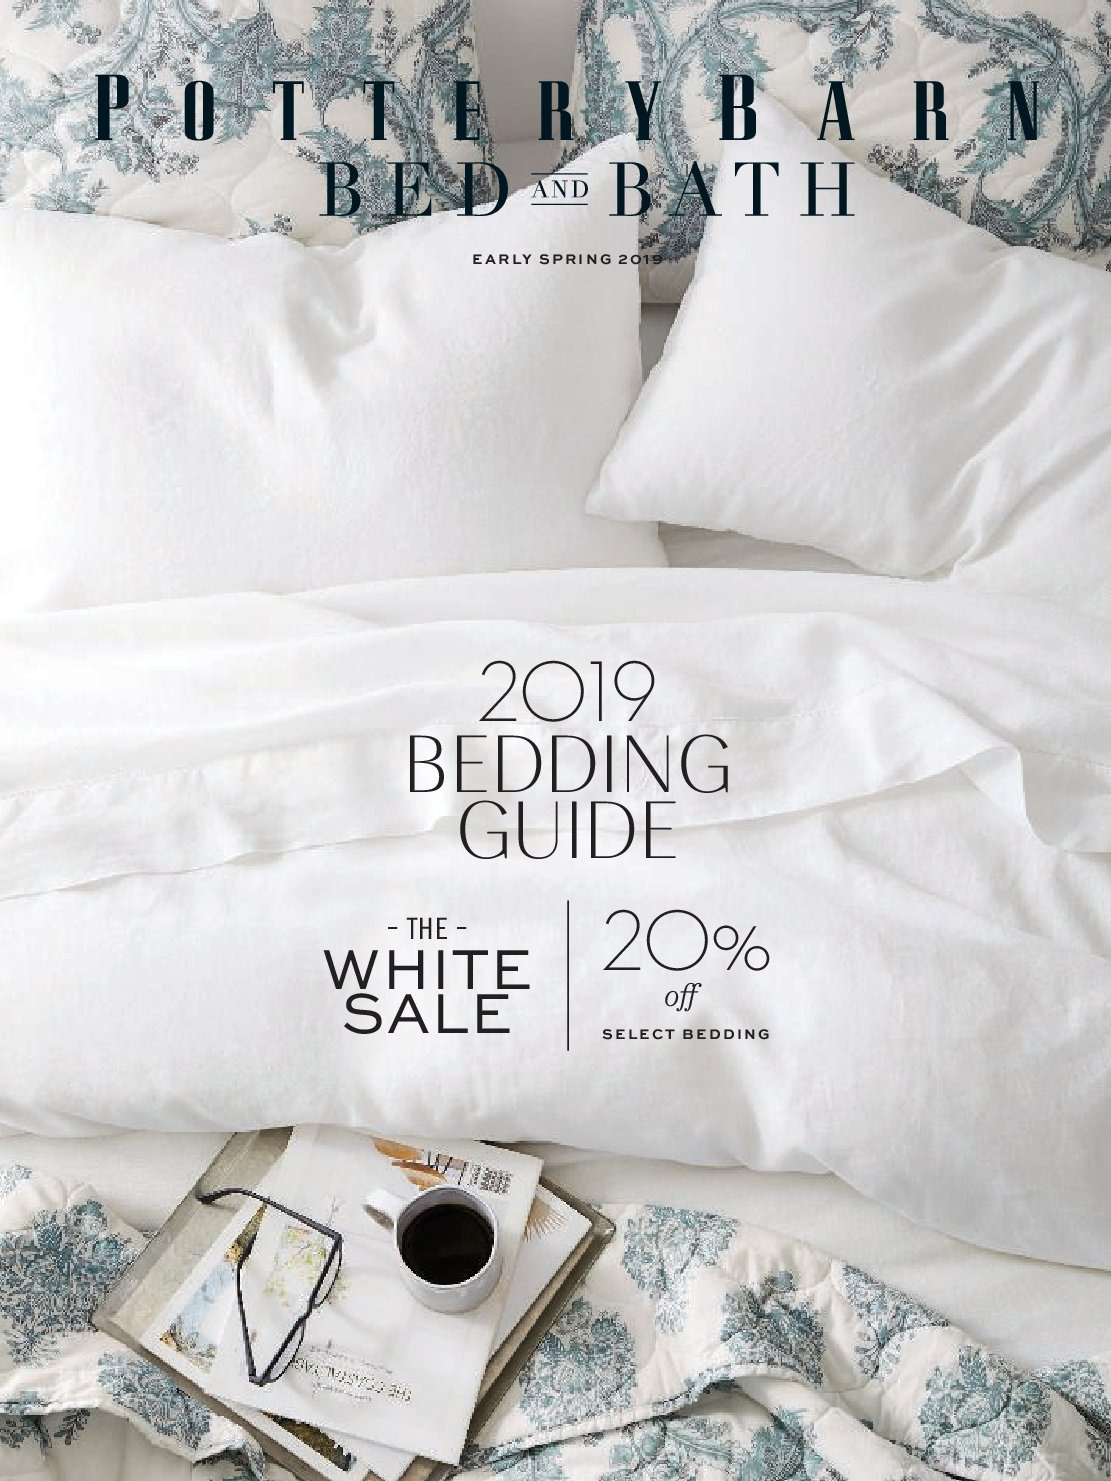 Pottery Barn Flyer - Sales products - bedding. Page 1.